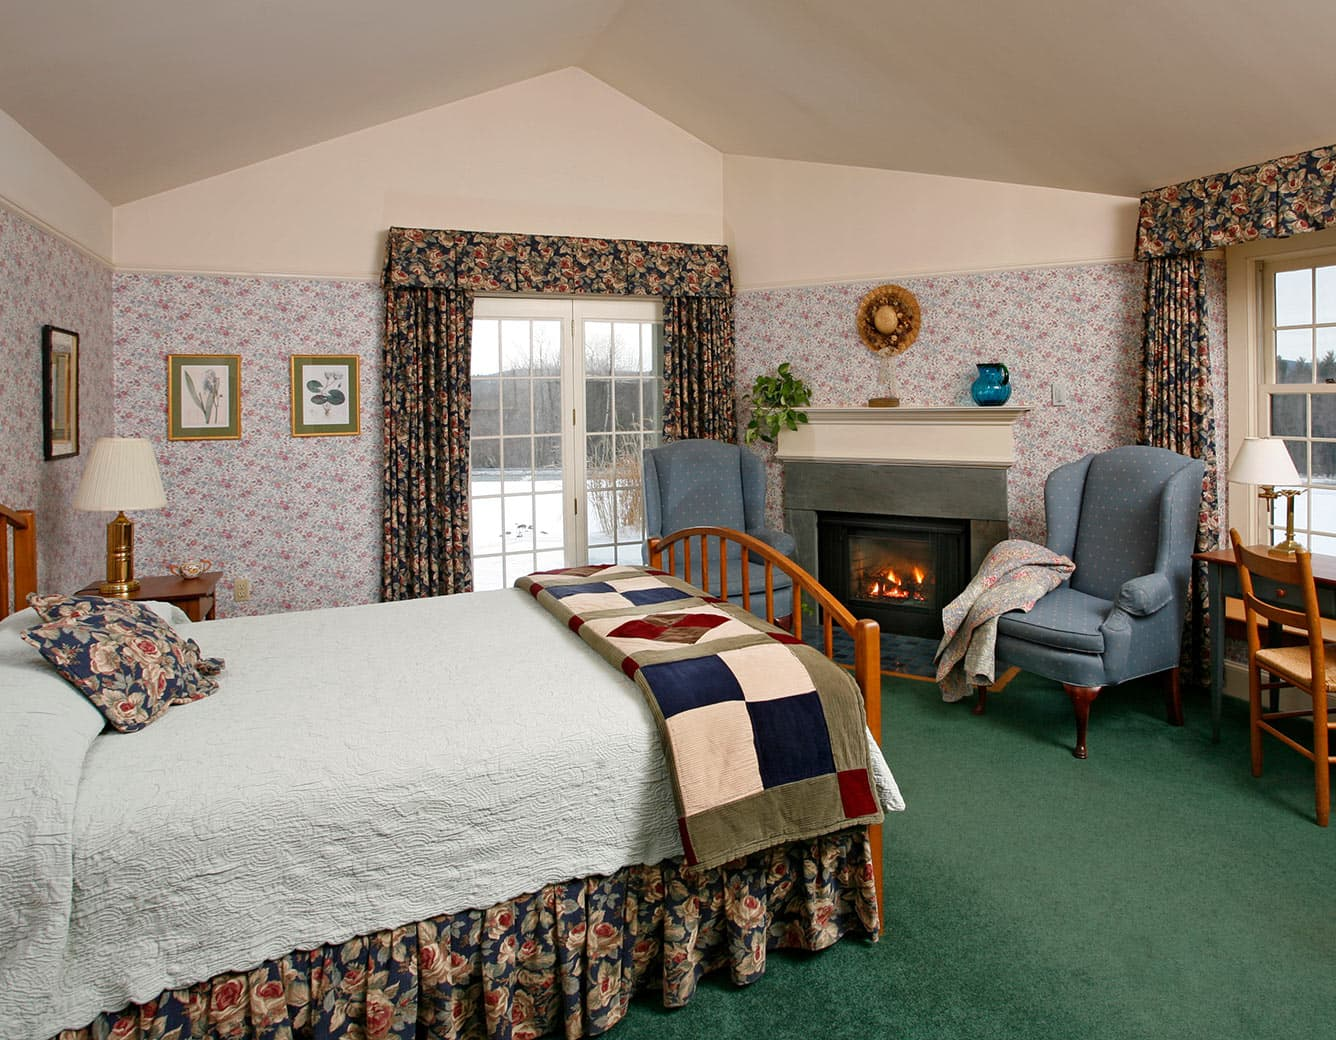 Bed, fireplace, two chairs in Room 22